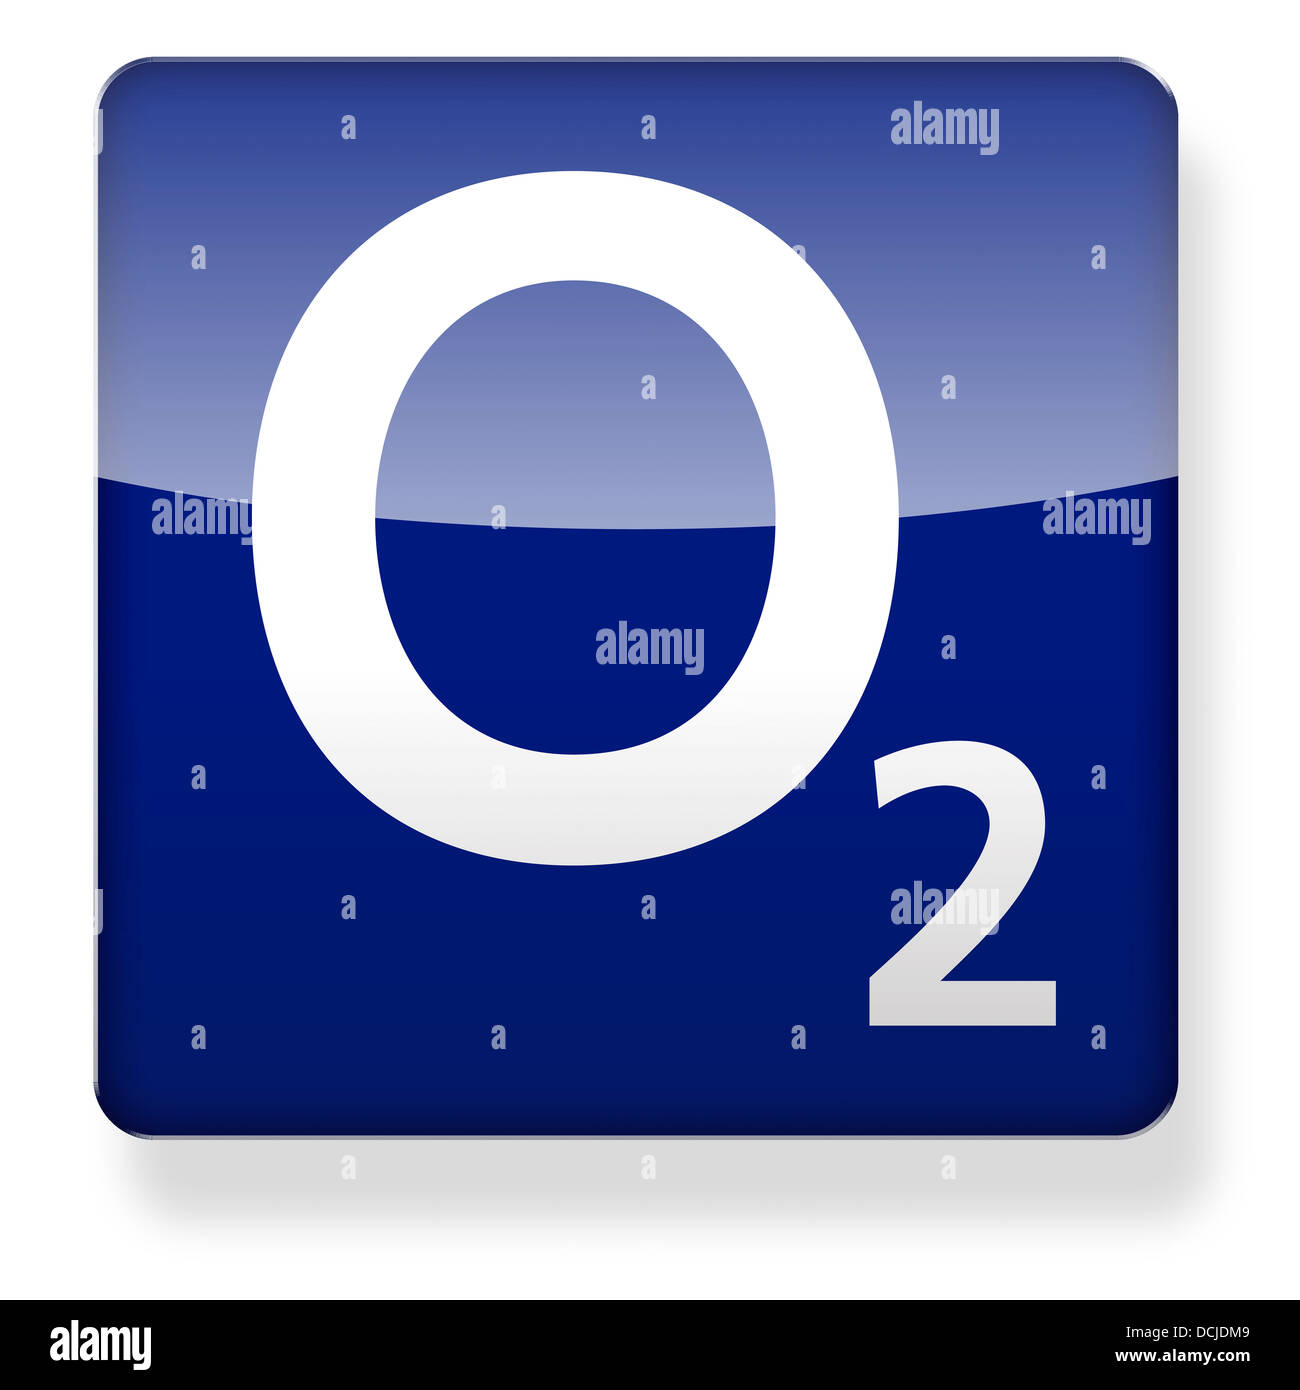 O2 as an app icon. Clipping path included. - Stock Image